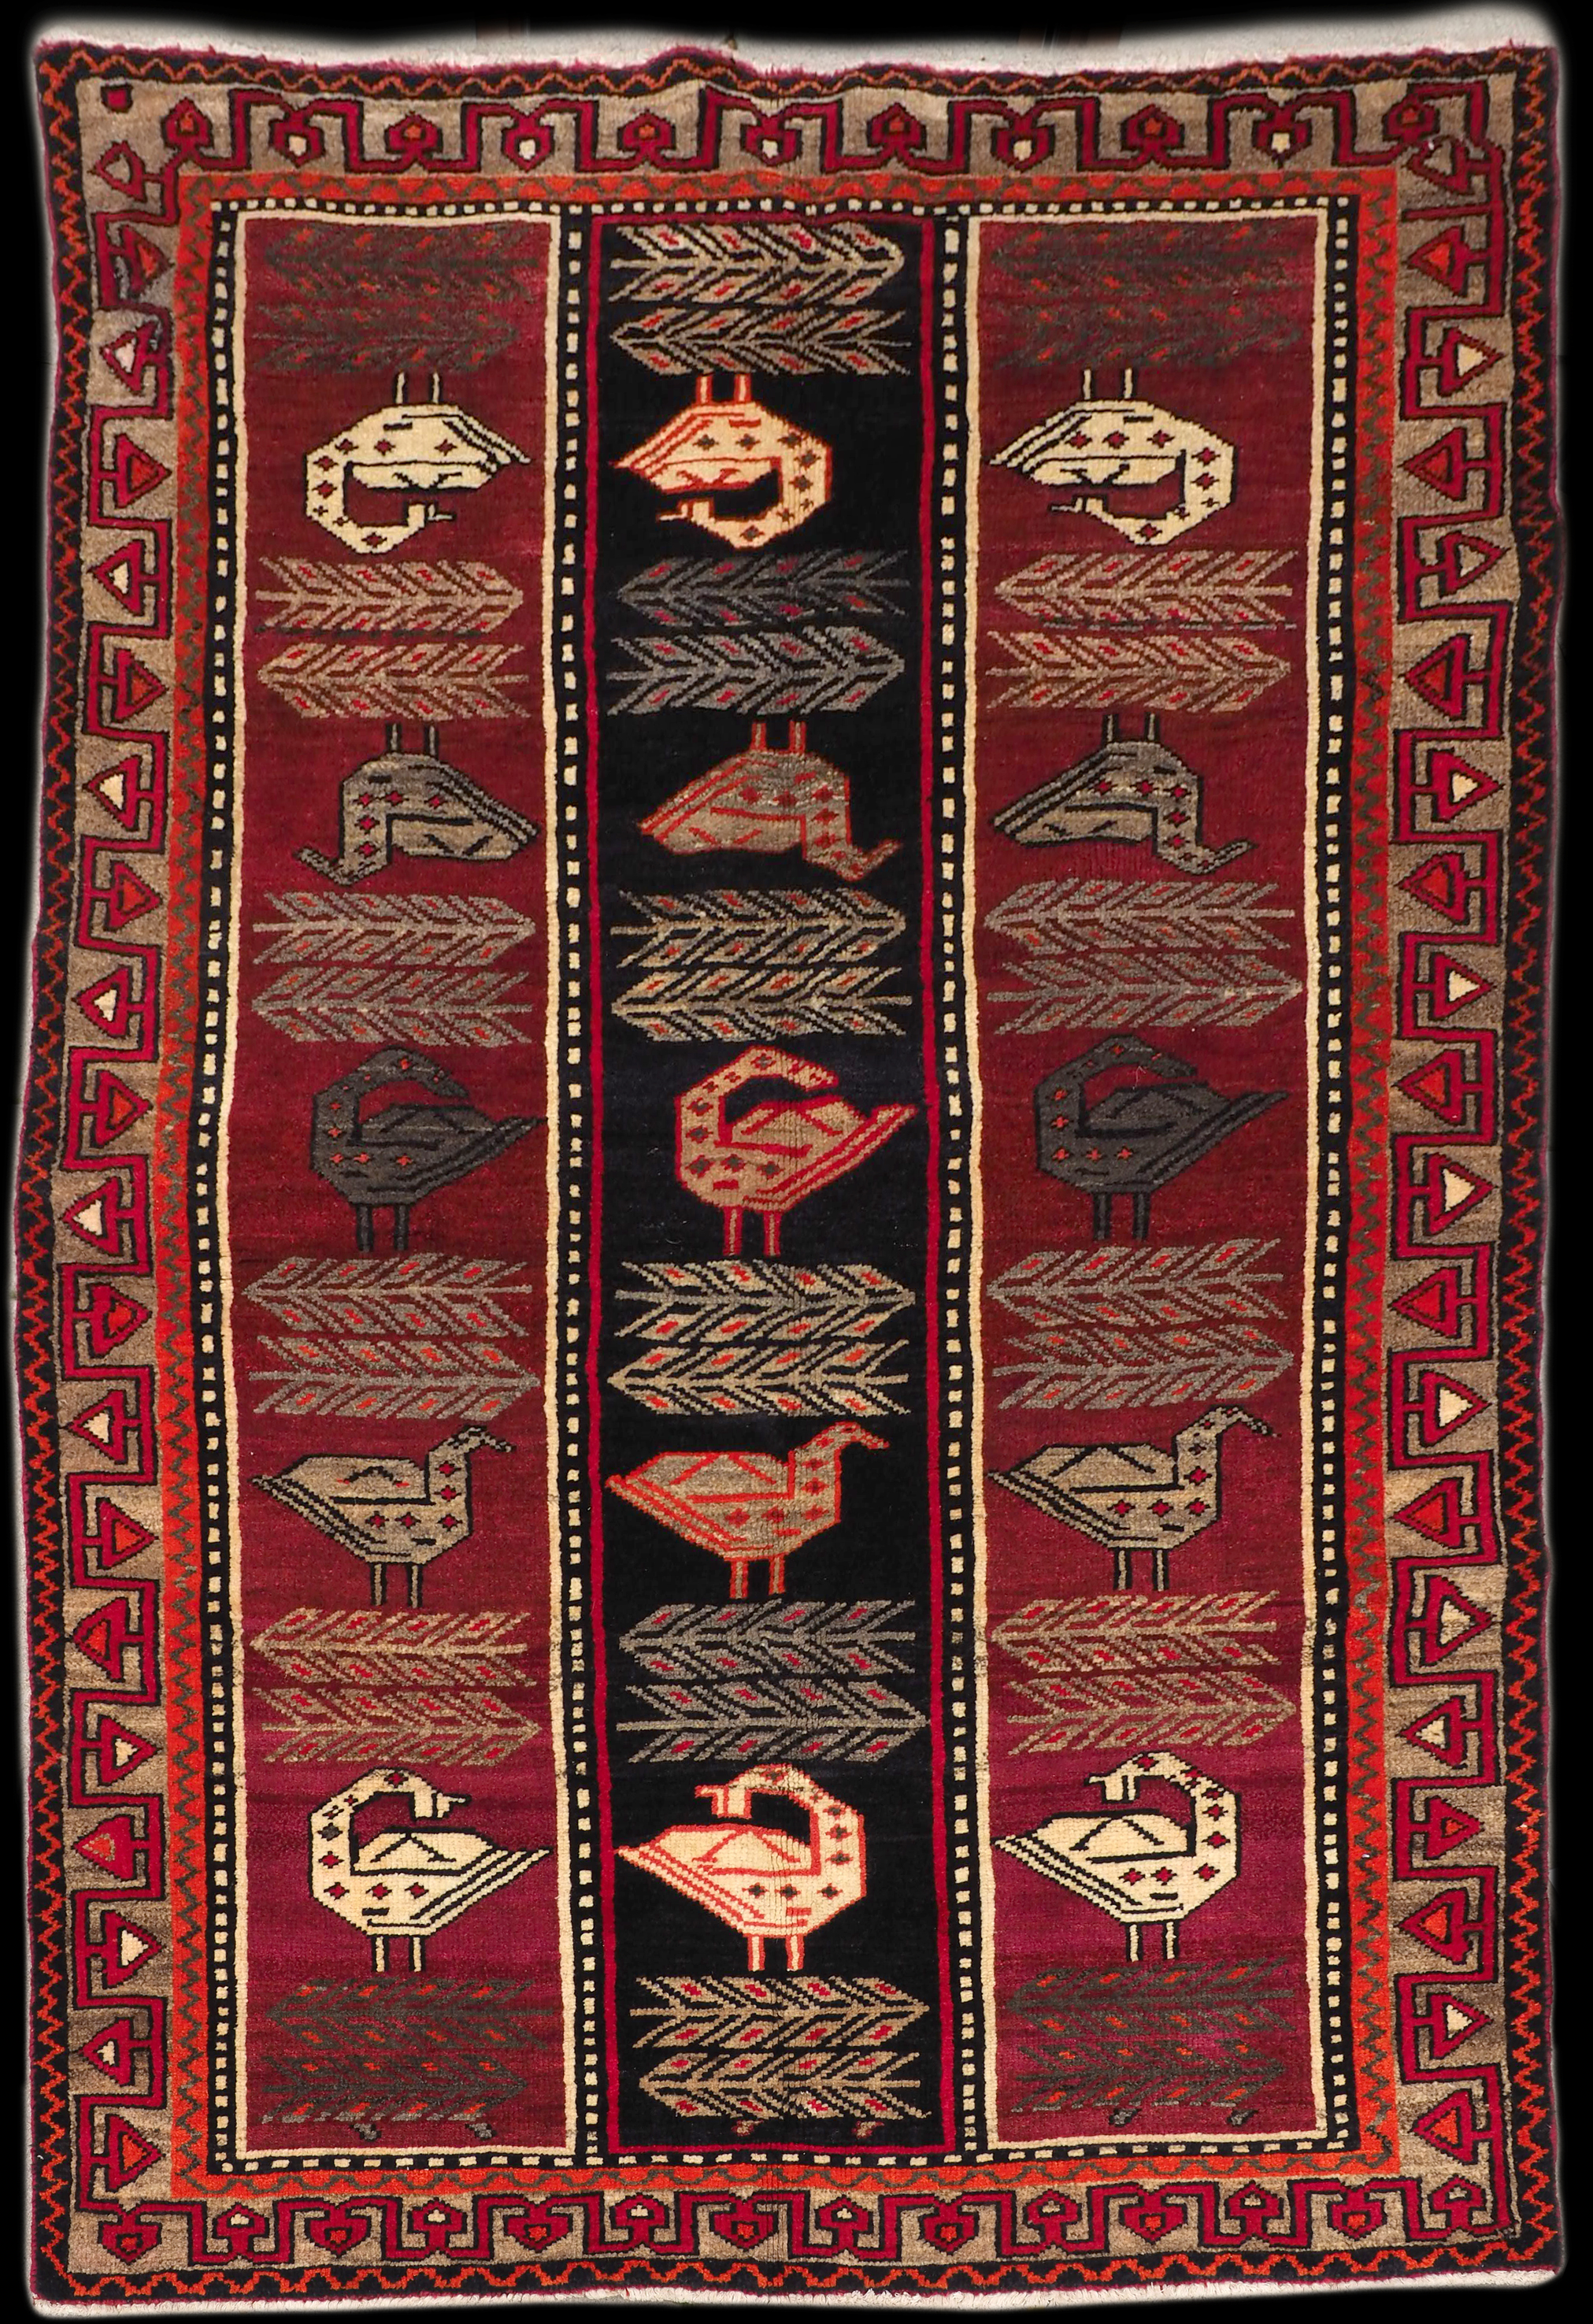 Authentic Persian Rug #18-072